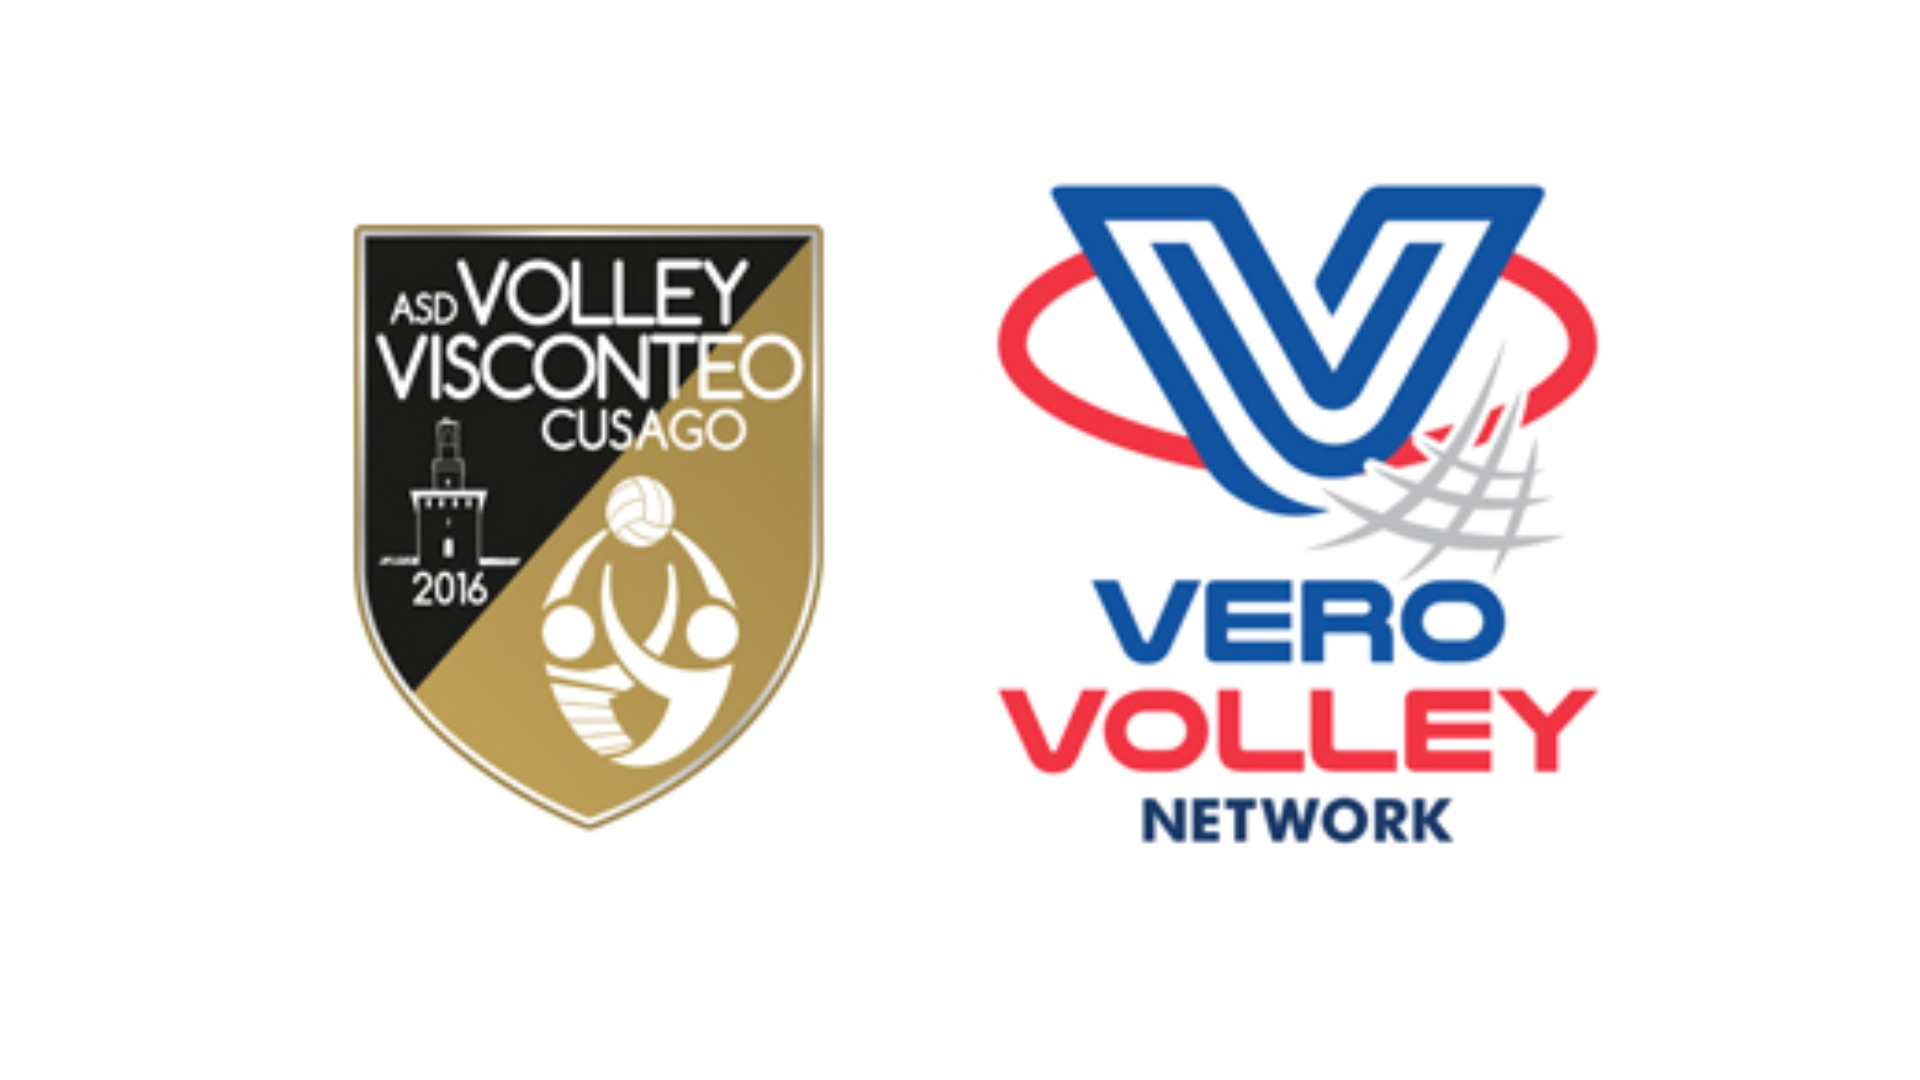 Il Volley Visconteo Cusago entra a far parte del Vero Volley Network